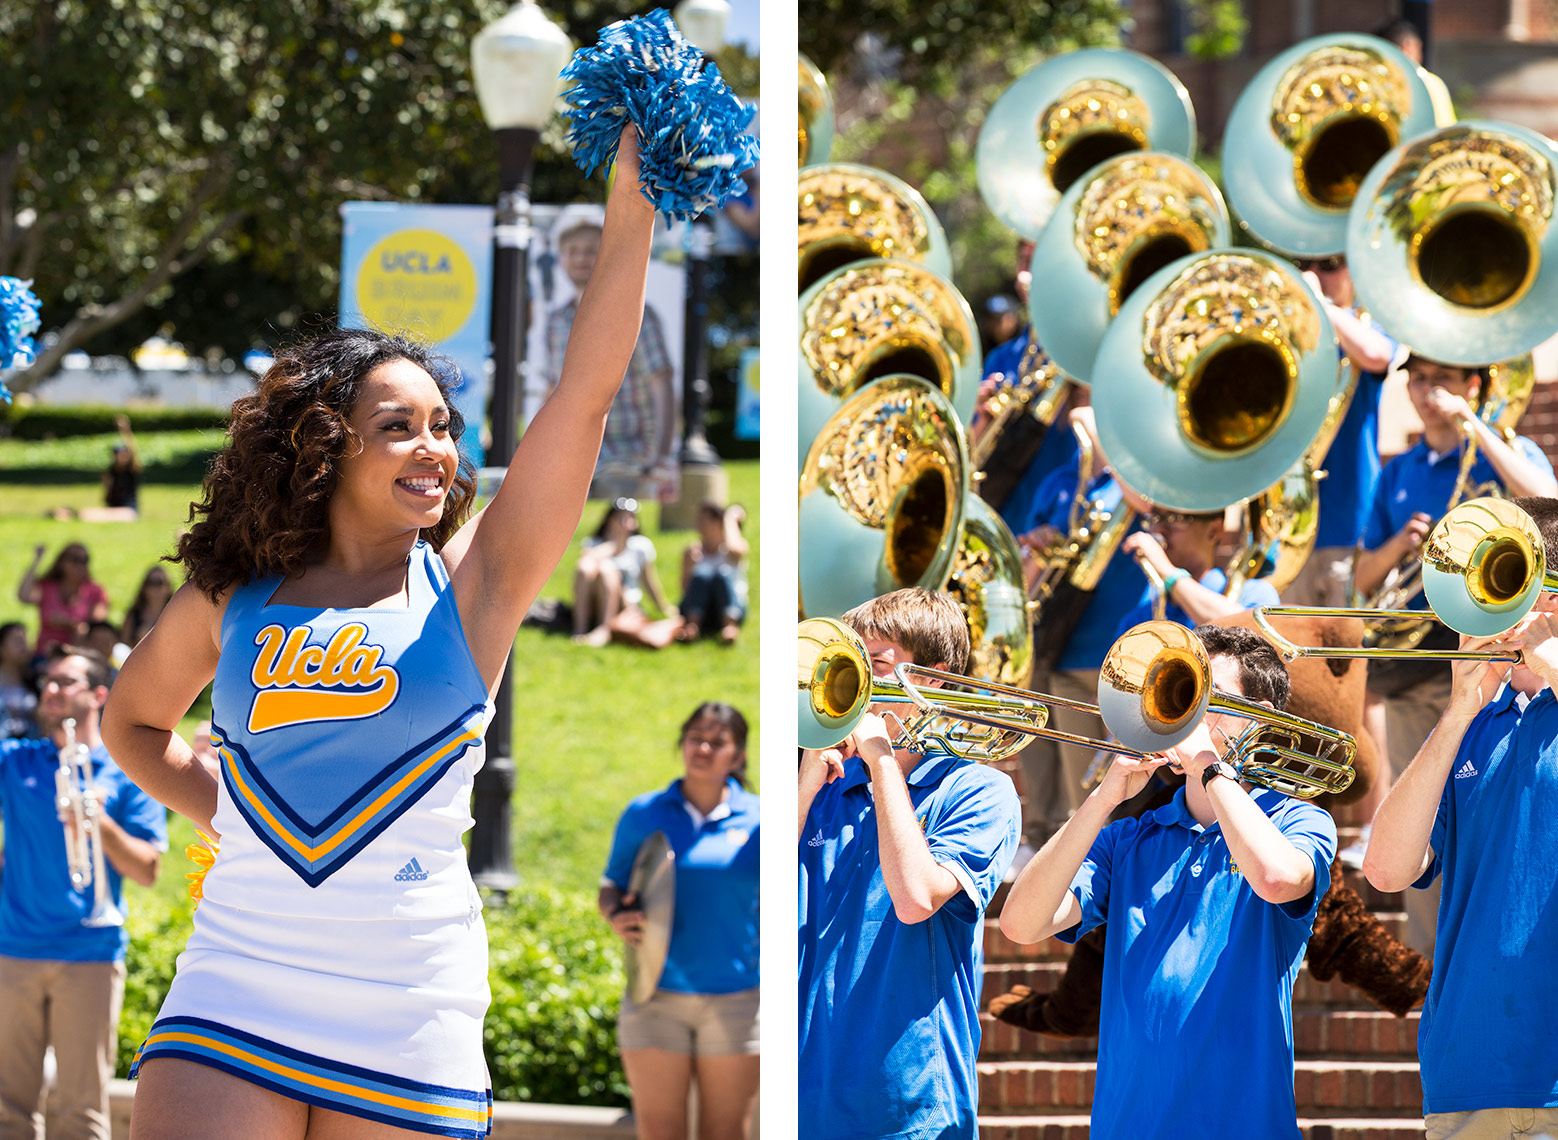 016-160416_UCLA_BruinDay_SpiritRally-0235